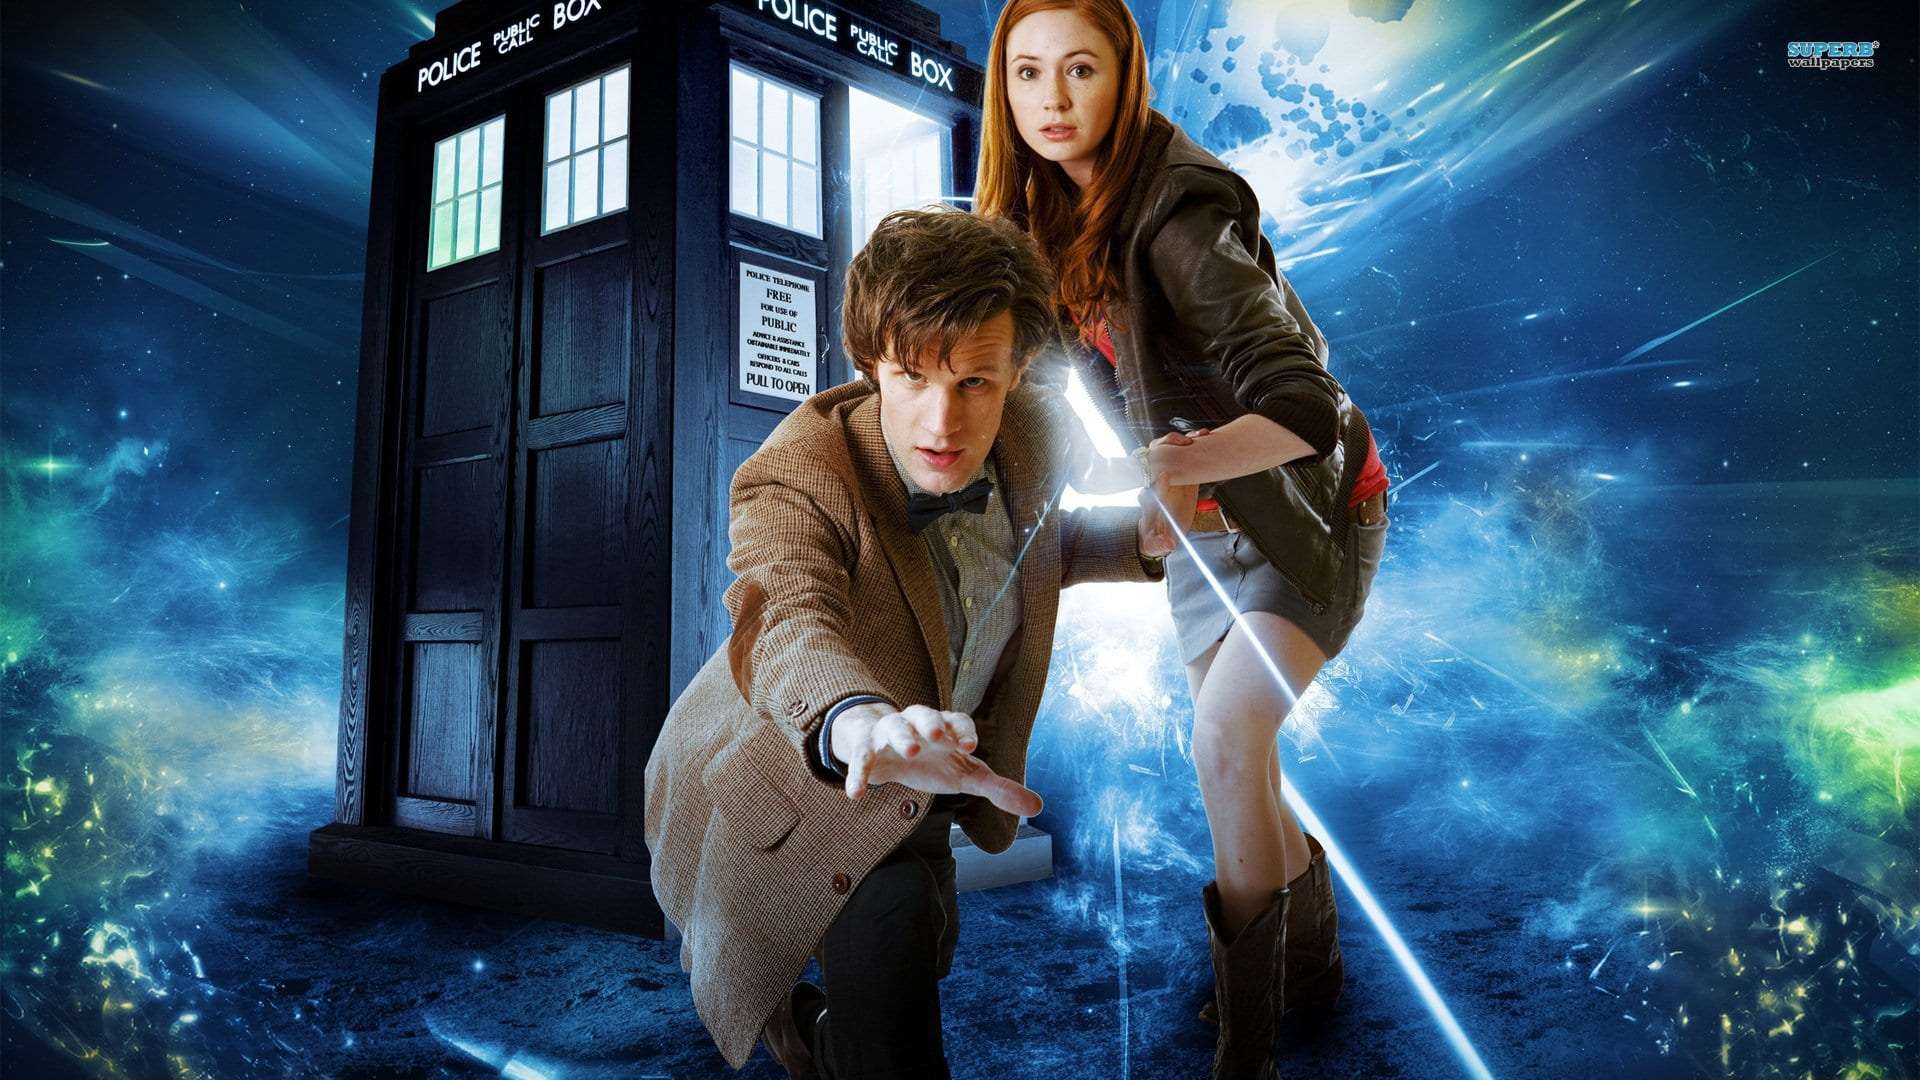 Doctor who cell phone wallpaper